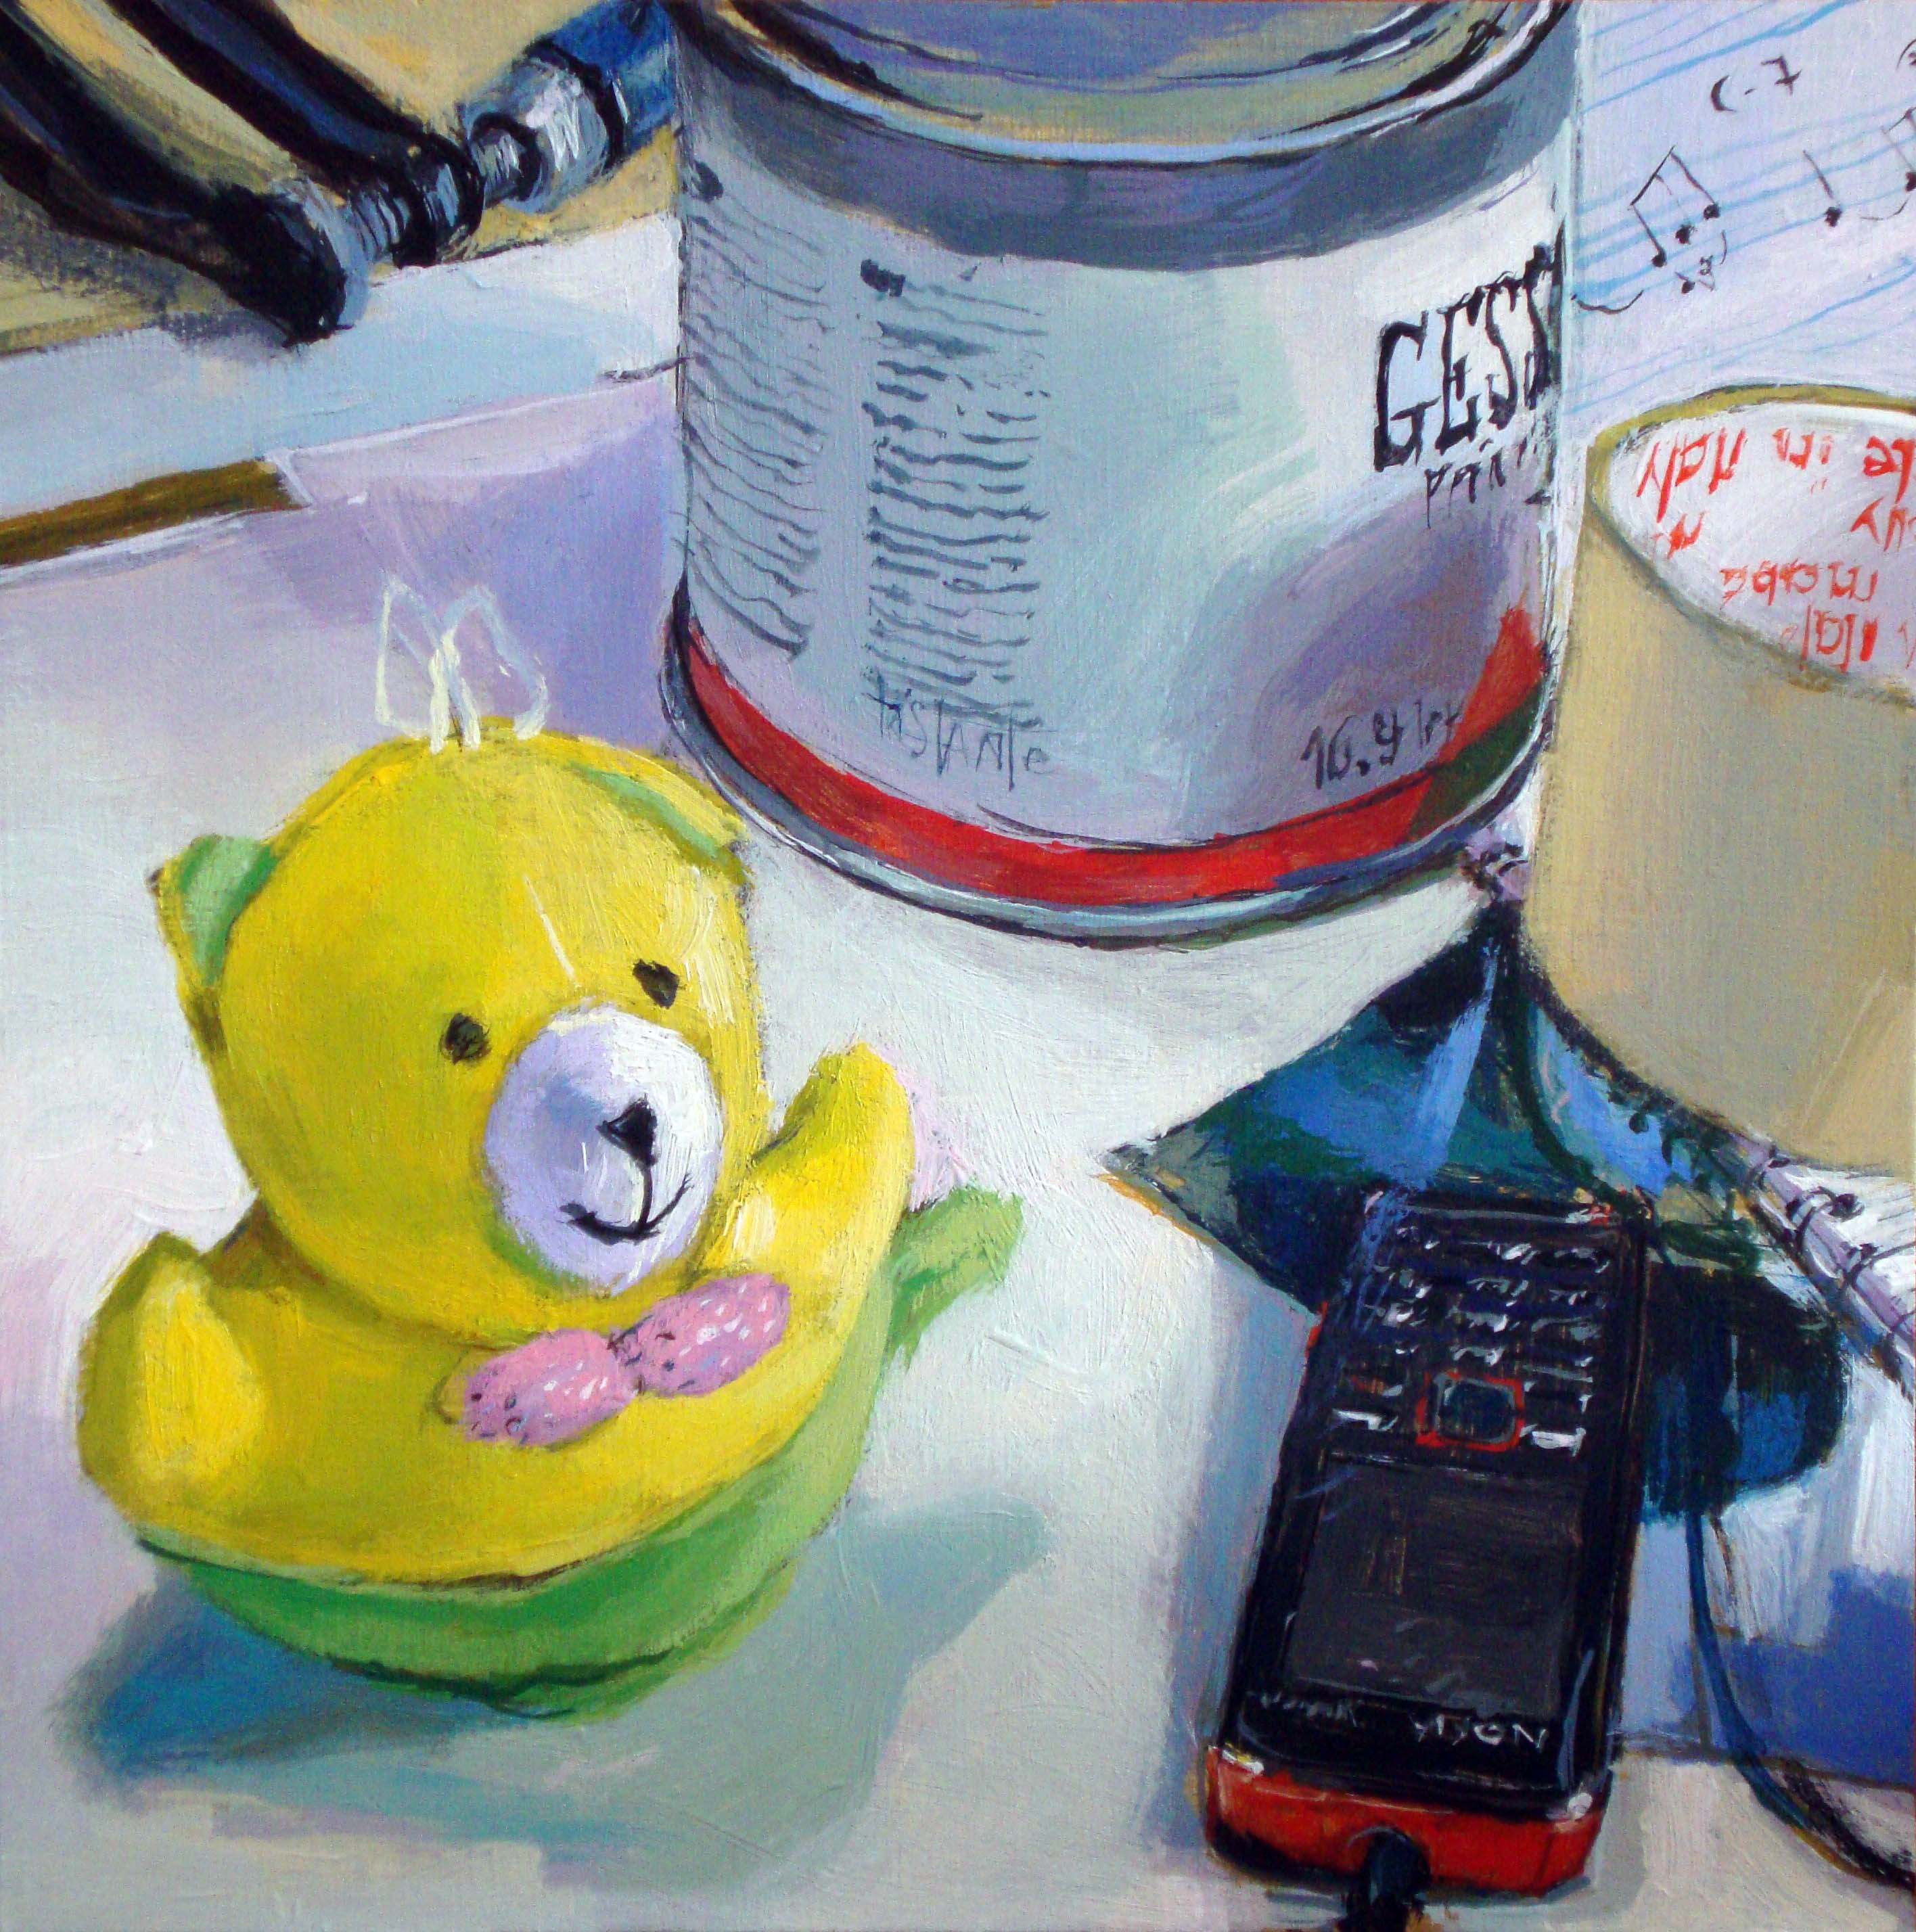 """Gesso, sheets and the yellow bear"" original fine art by Víctor Tristante"